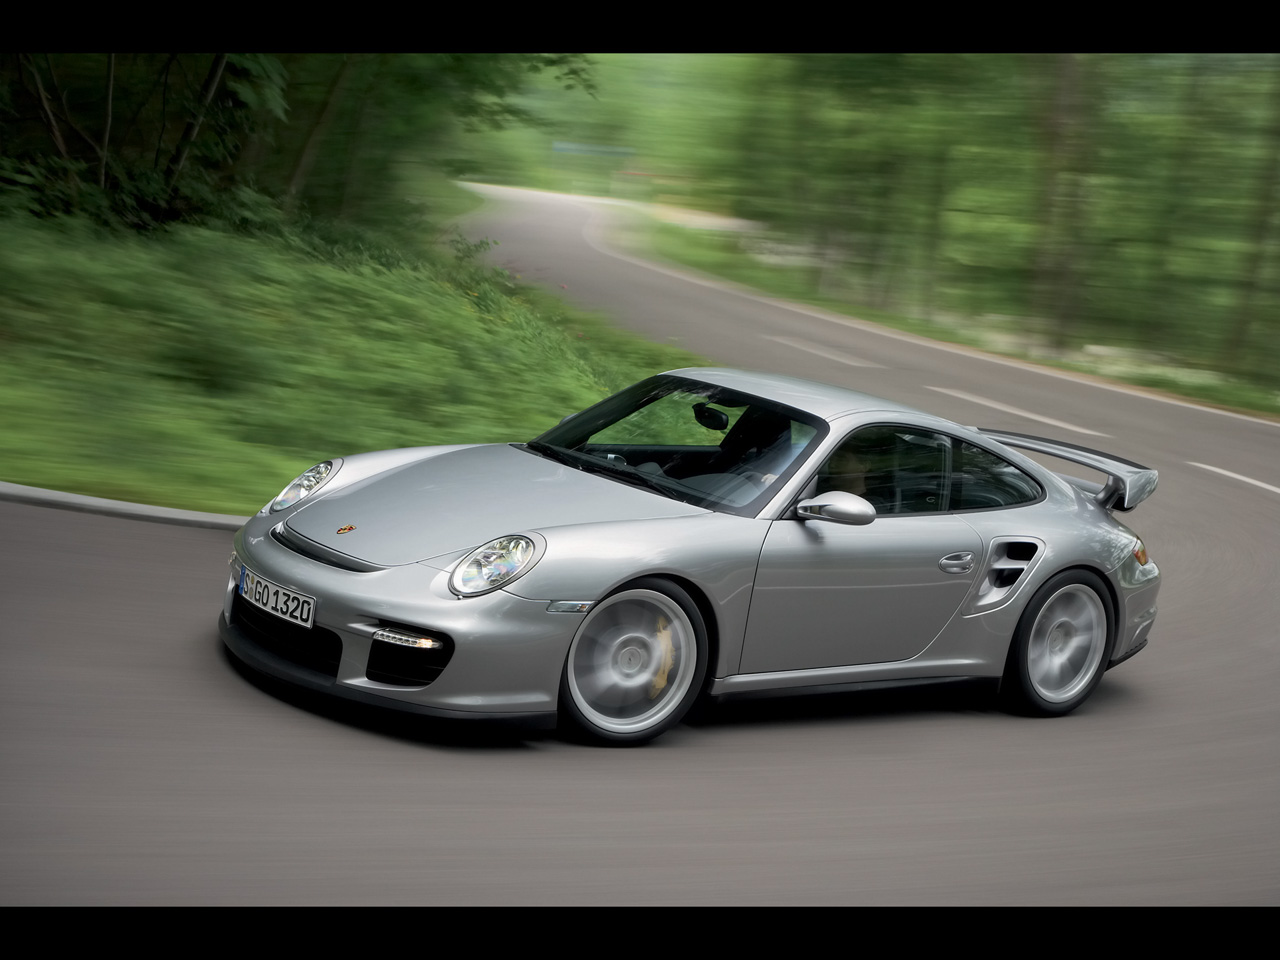 2008 porsche 911 information and photos zombiedrive. Black Bedroom Furniture Sets. Home Design Ideas